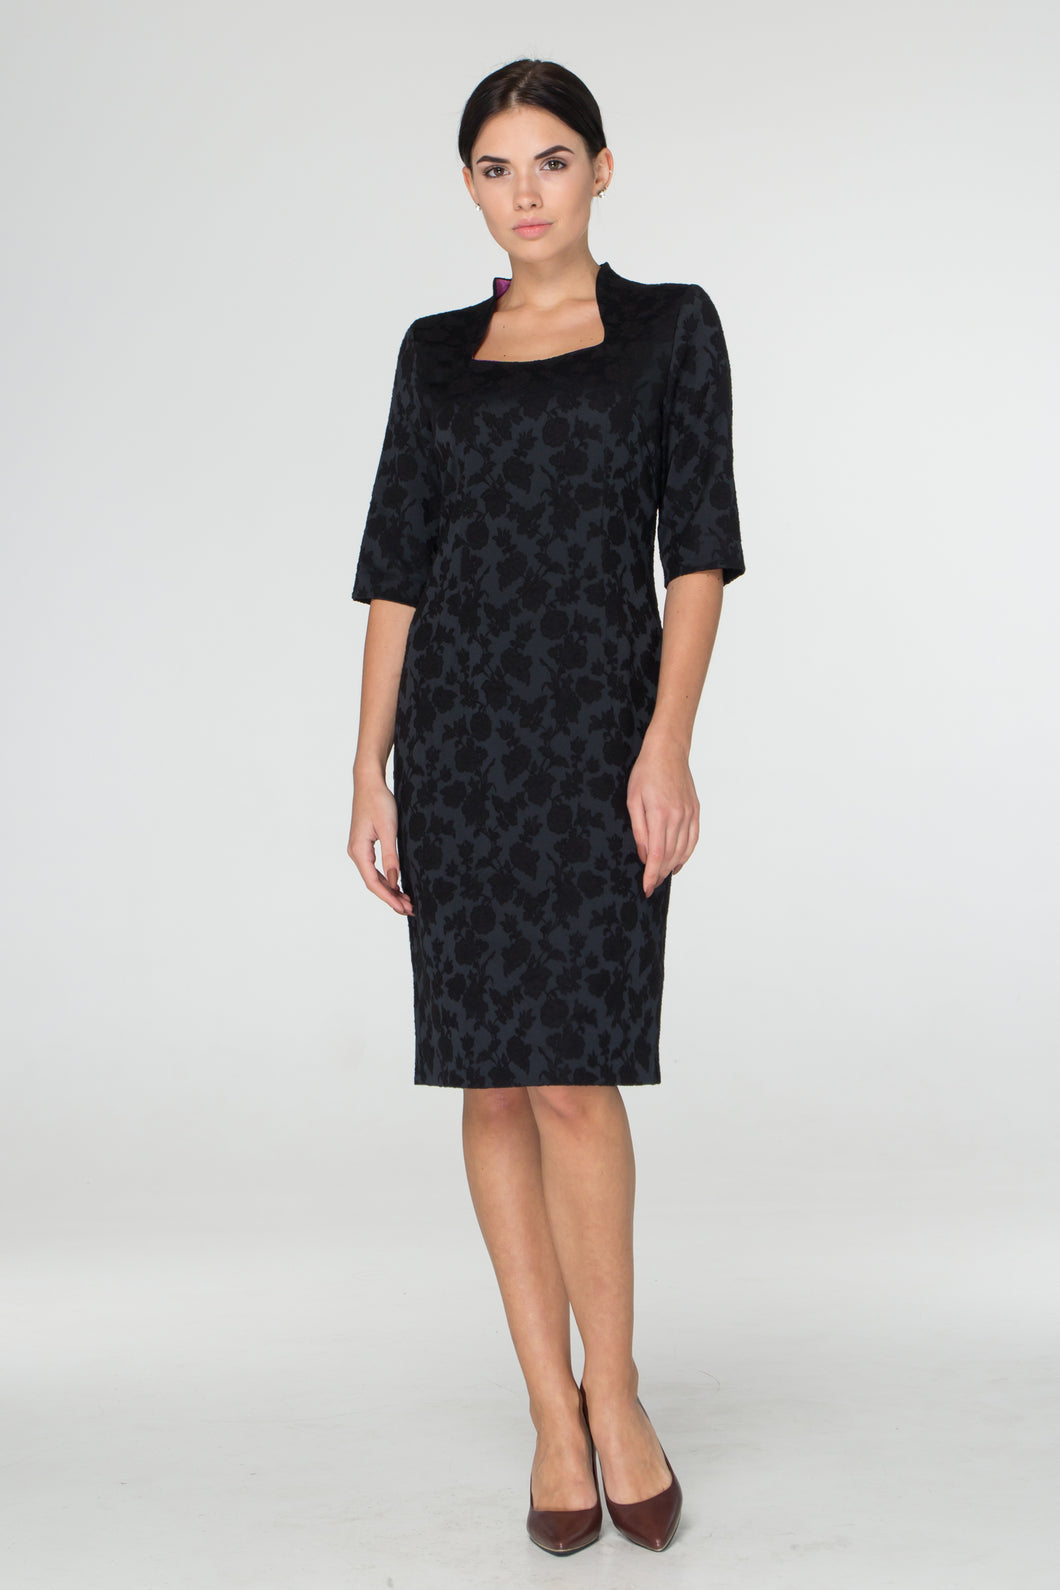 Black jacquard midi dress